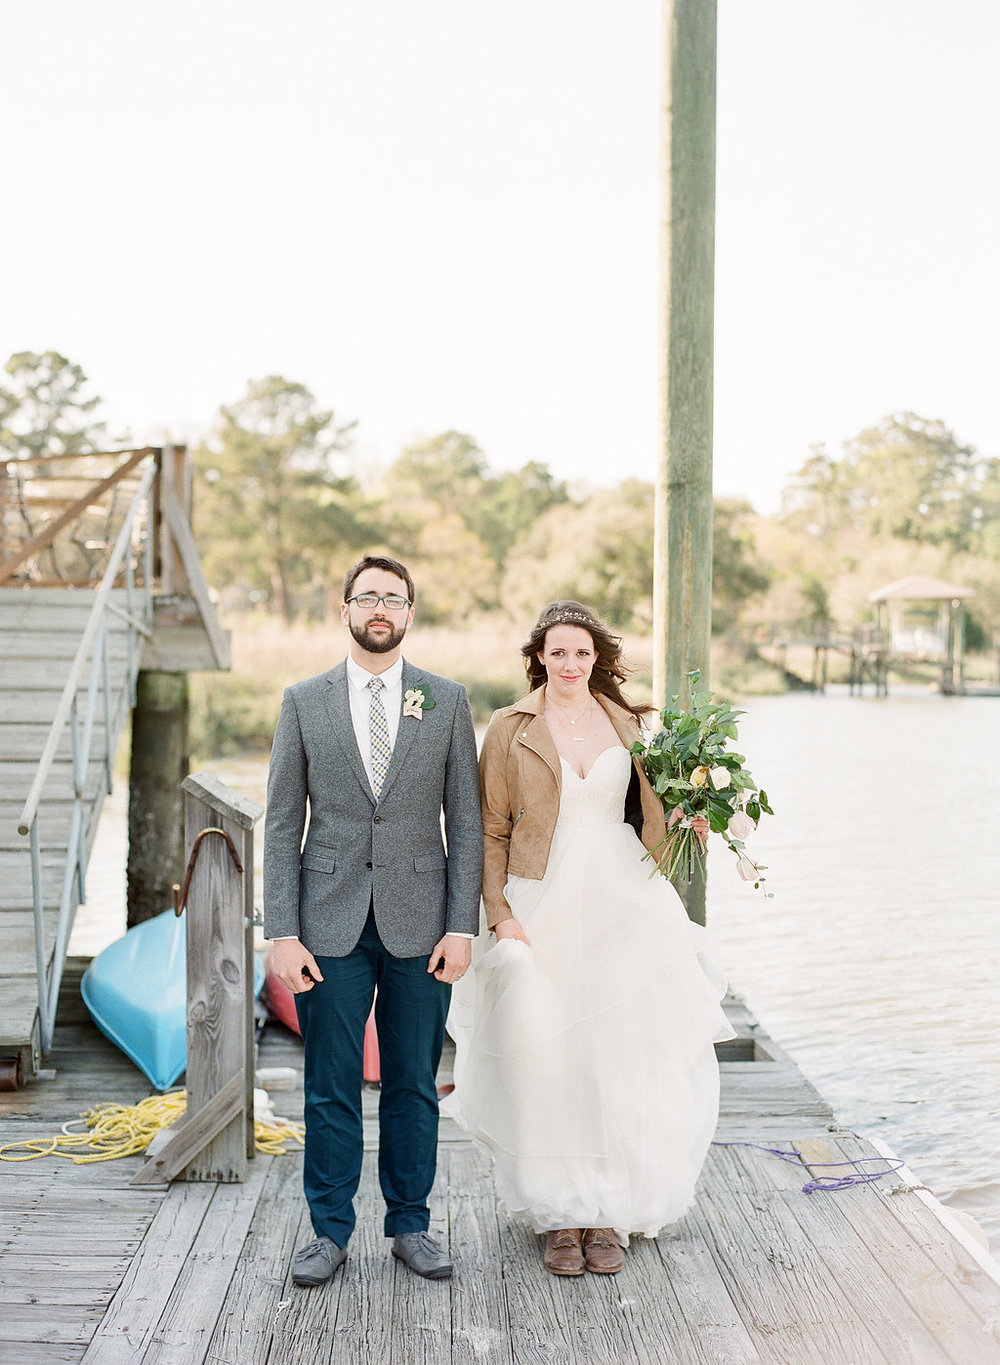 the-wyld-ivory-and-beau-sarah-seven-worthington-wedding-dress-savannah-bridal-boutique-savannah-wedding-dresses-leather-jacket-the-wyld-dock-bar-wedding.jpg